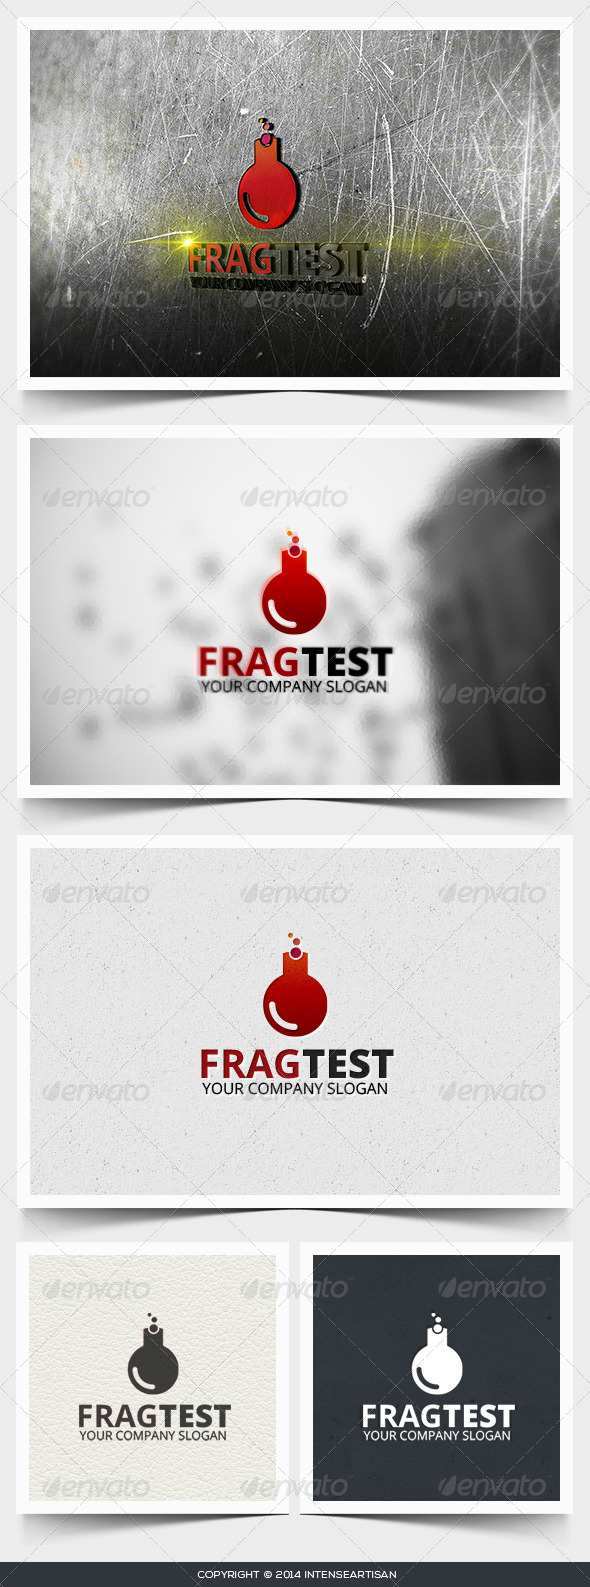 Frag Test Logo Template - Objects Logo Templates